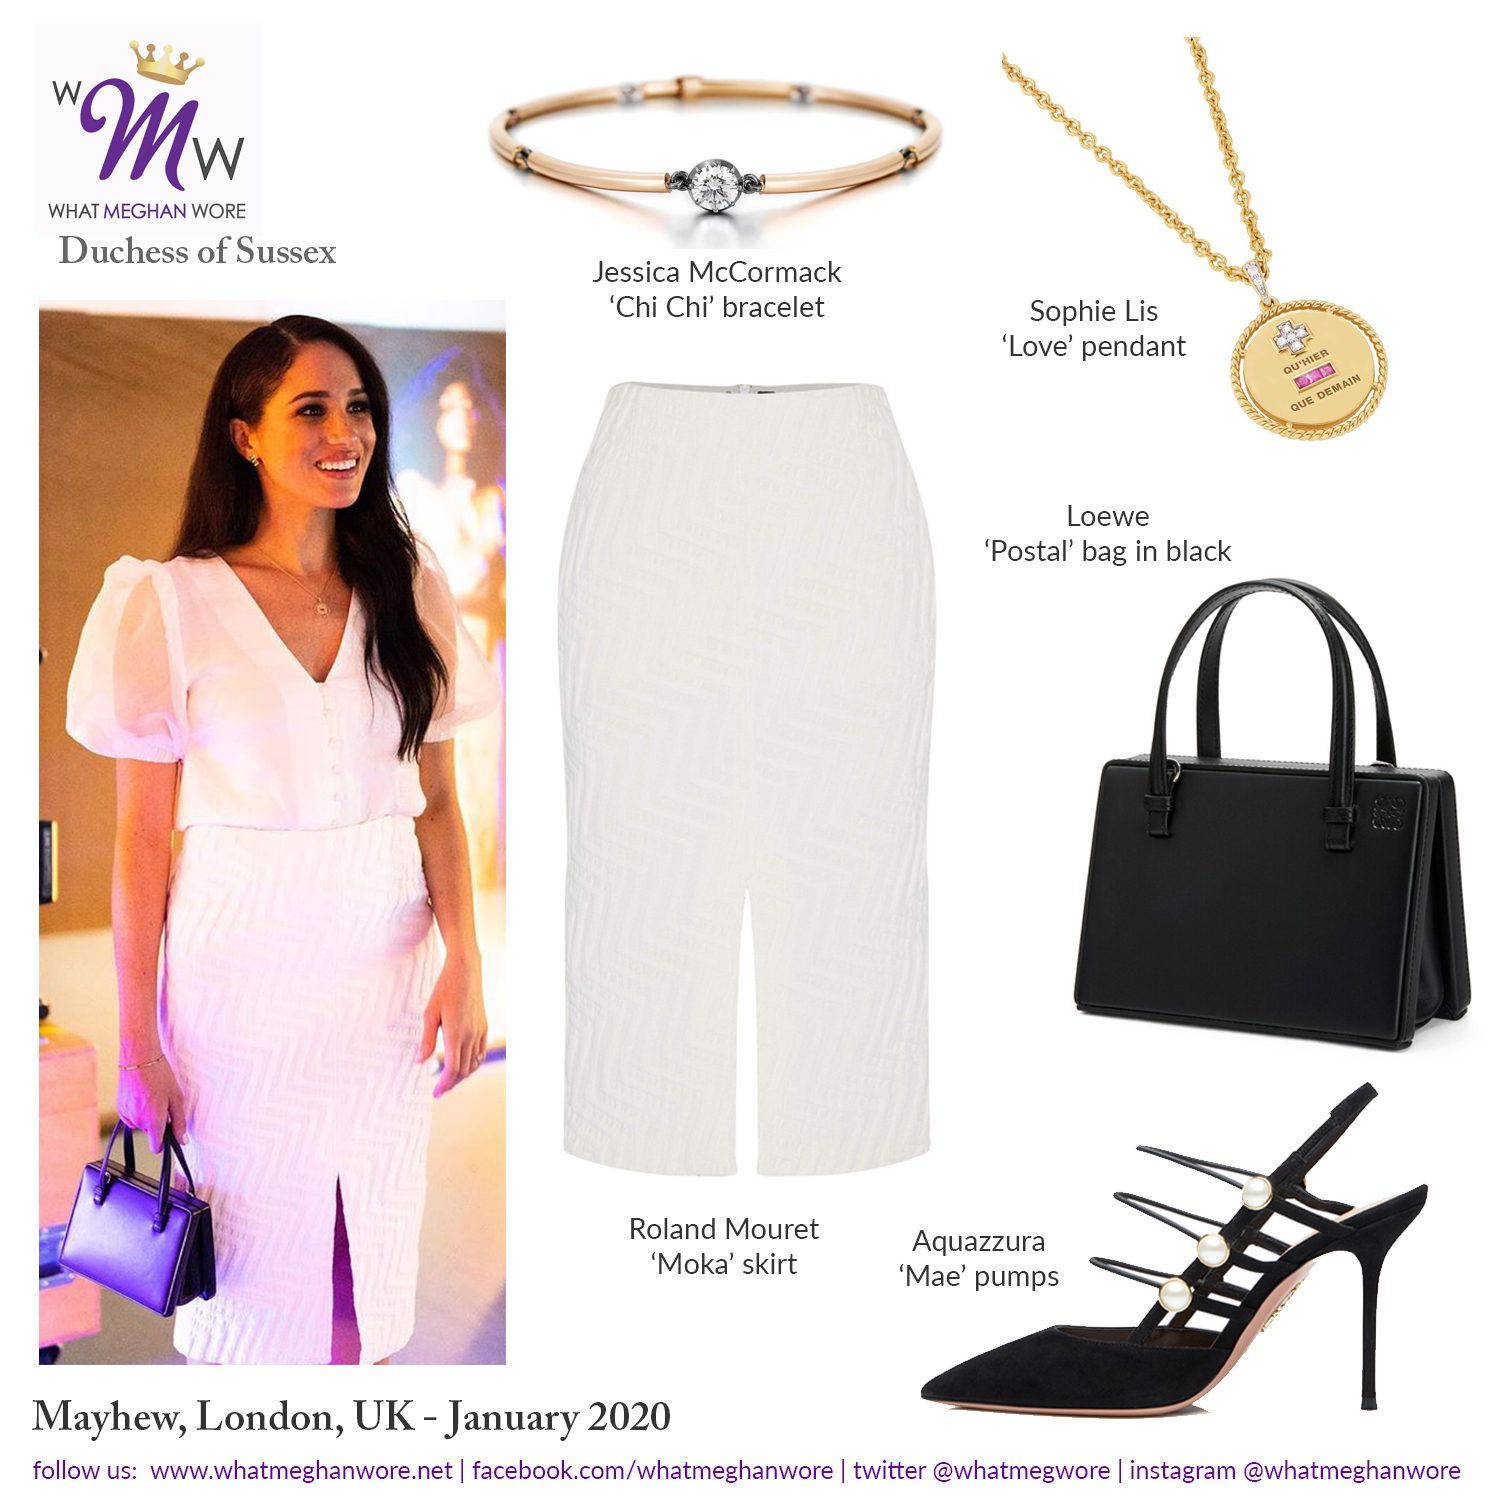 What Meghan Wore On Twitter Check Out Our Latest Post Https T Co Ybhlikudog Meghan Visits Immersive Storytelling Studio In London Wearing Roland Mouret And